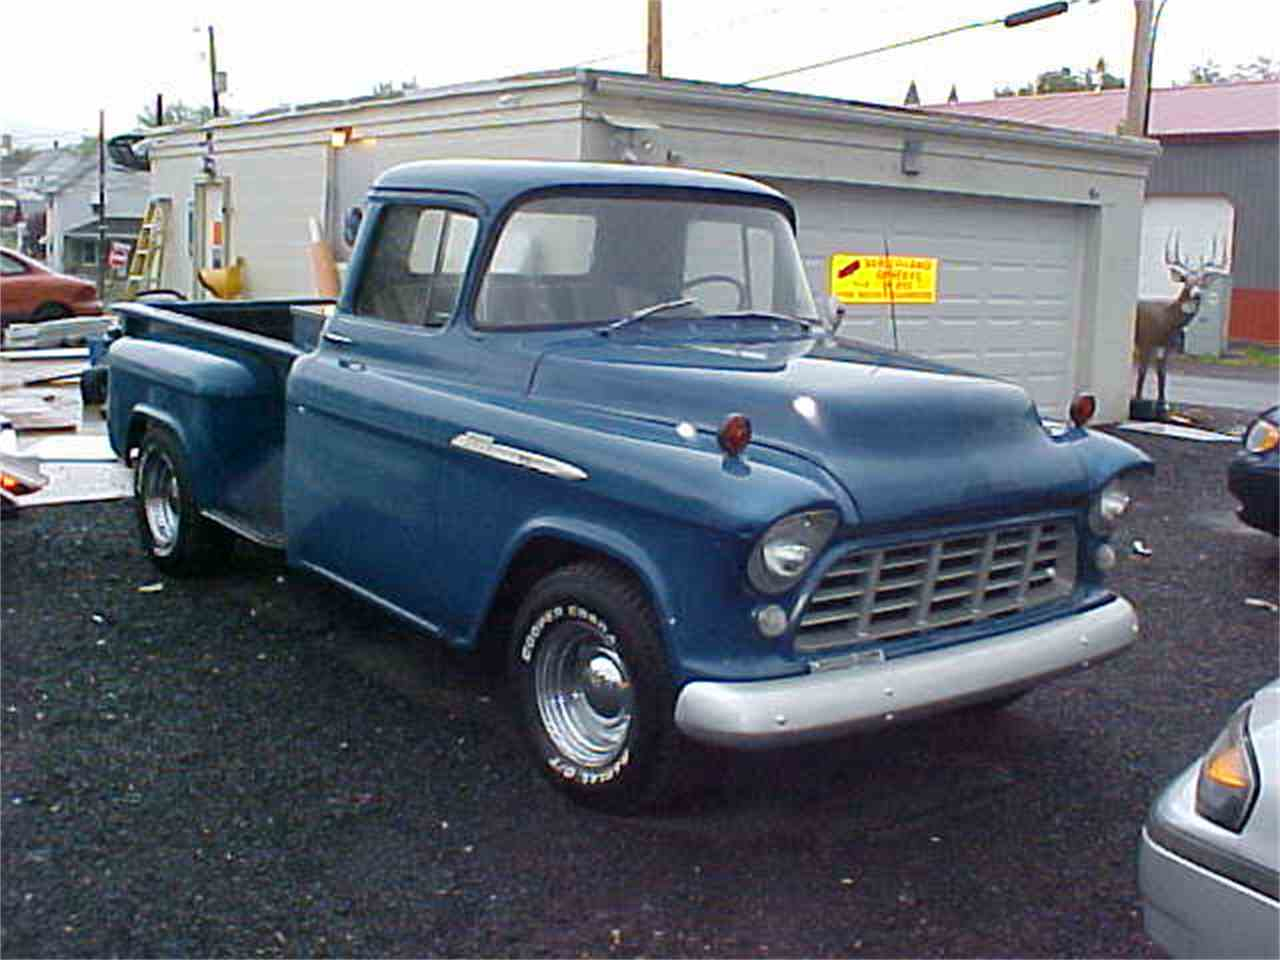 All Chevy 55 chevy for sale : 1955 Chevrolet Pickup for Sale on ClassicCars.com